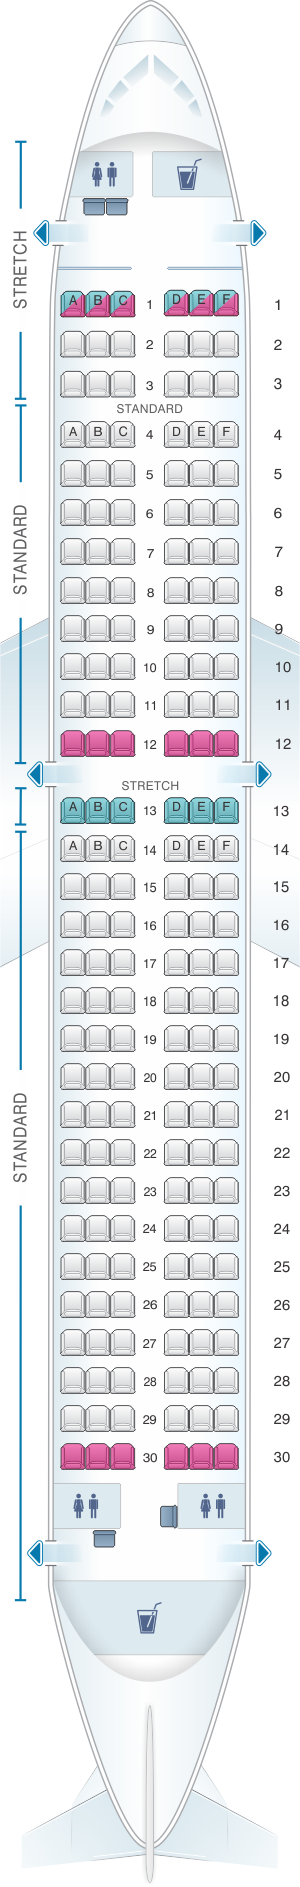 Frontier Airlines Seating Chart Airbus A320 In 2020 Air Transat Asiana Airlines Malaysia Airlines